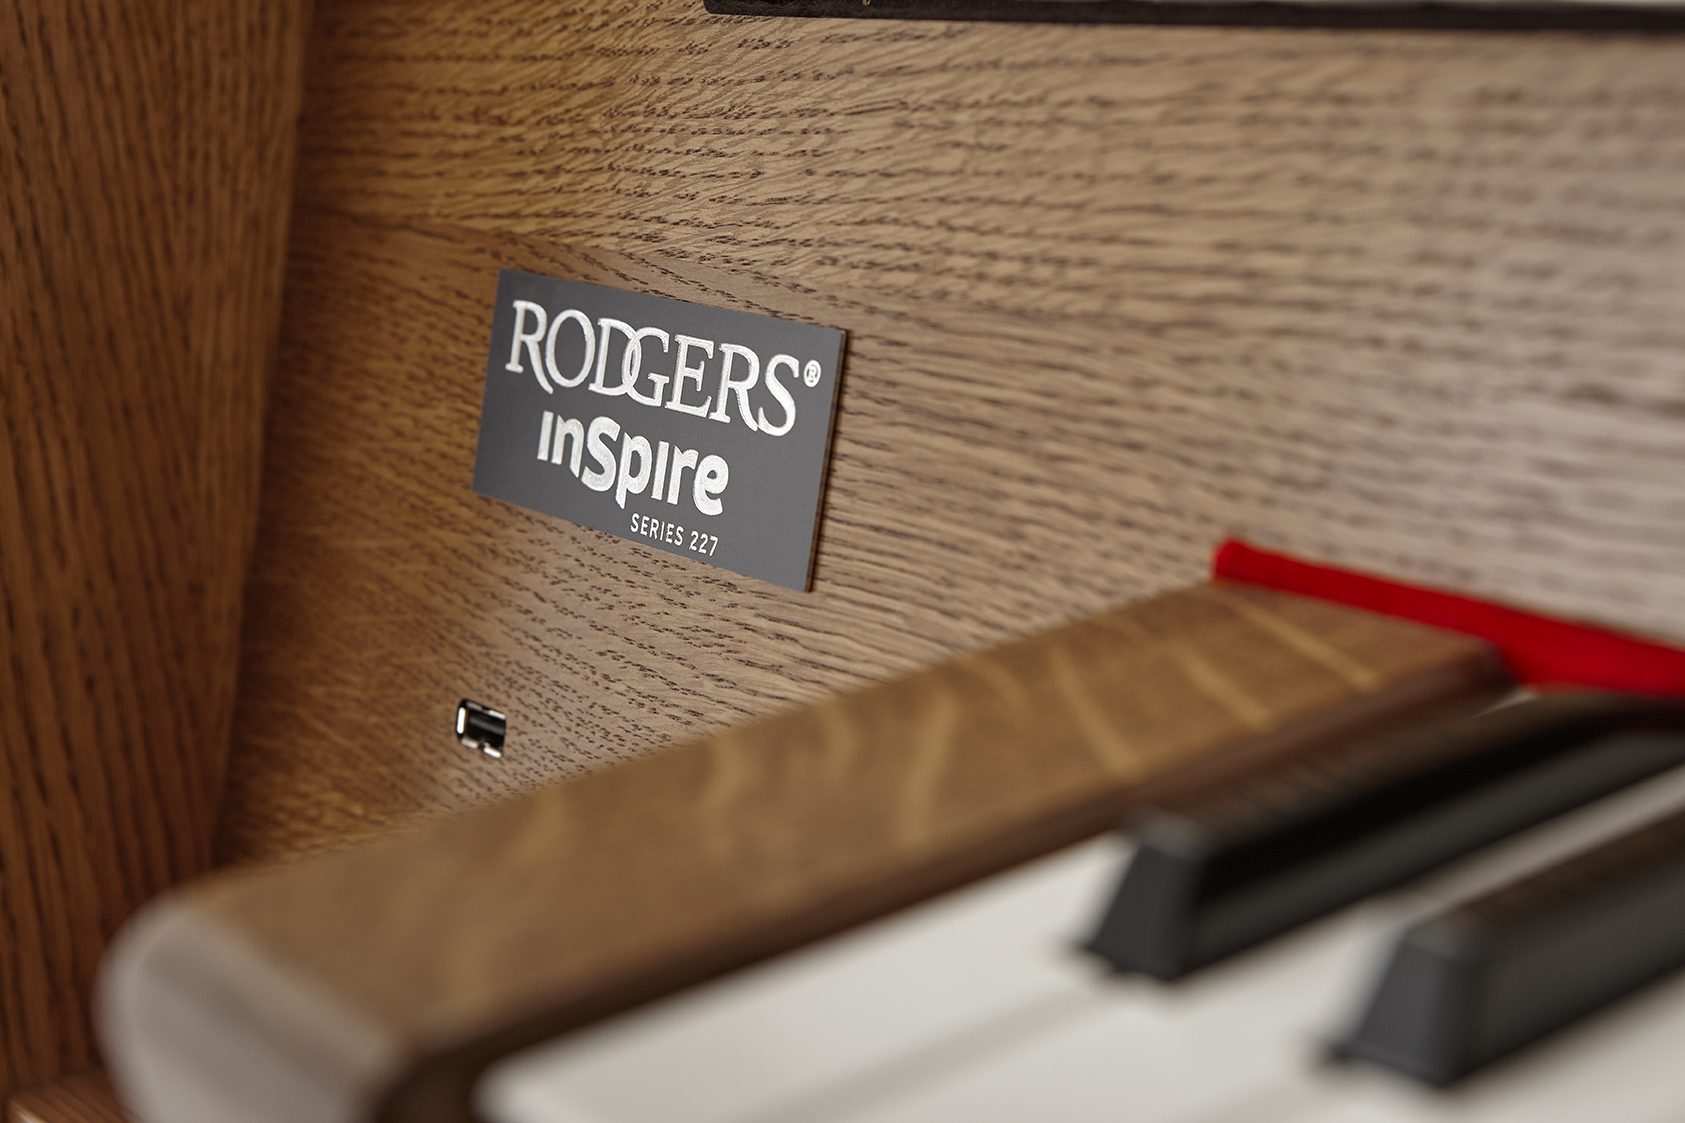 RODGERS_INSPIRE_SR227_DETAIL_2